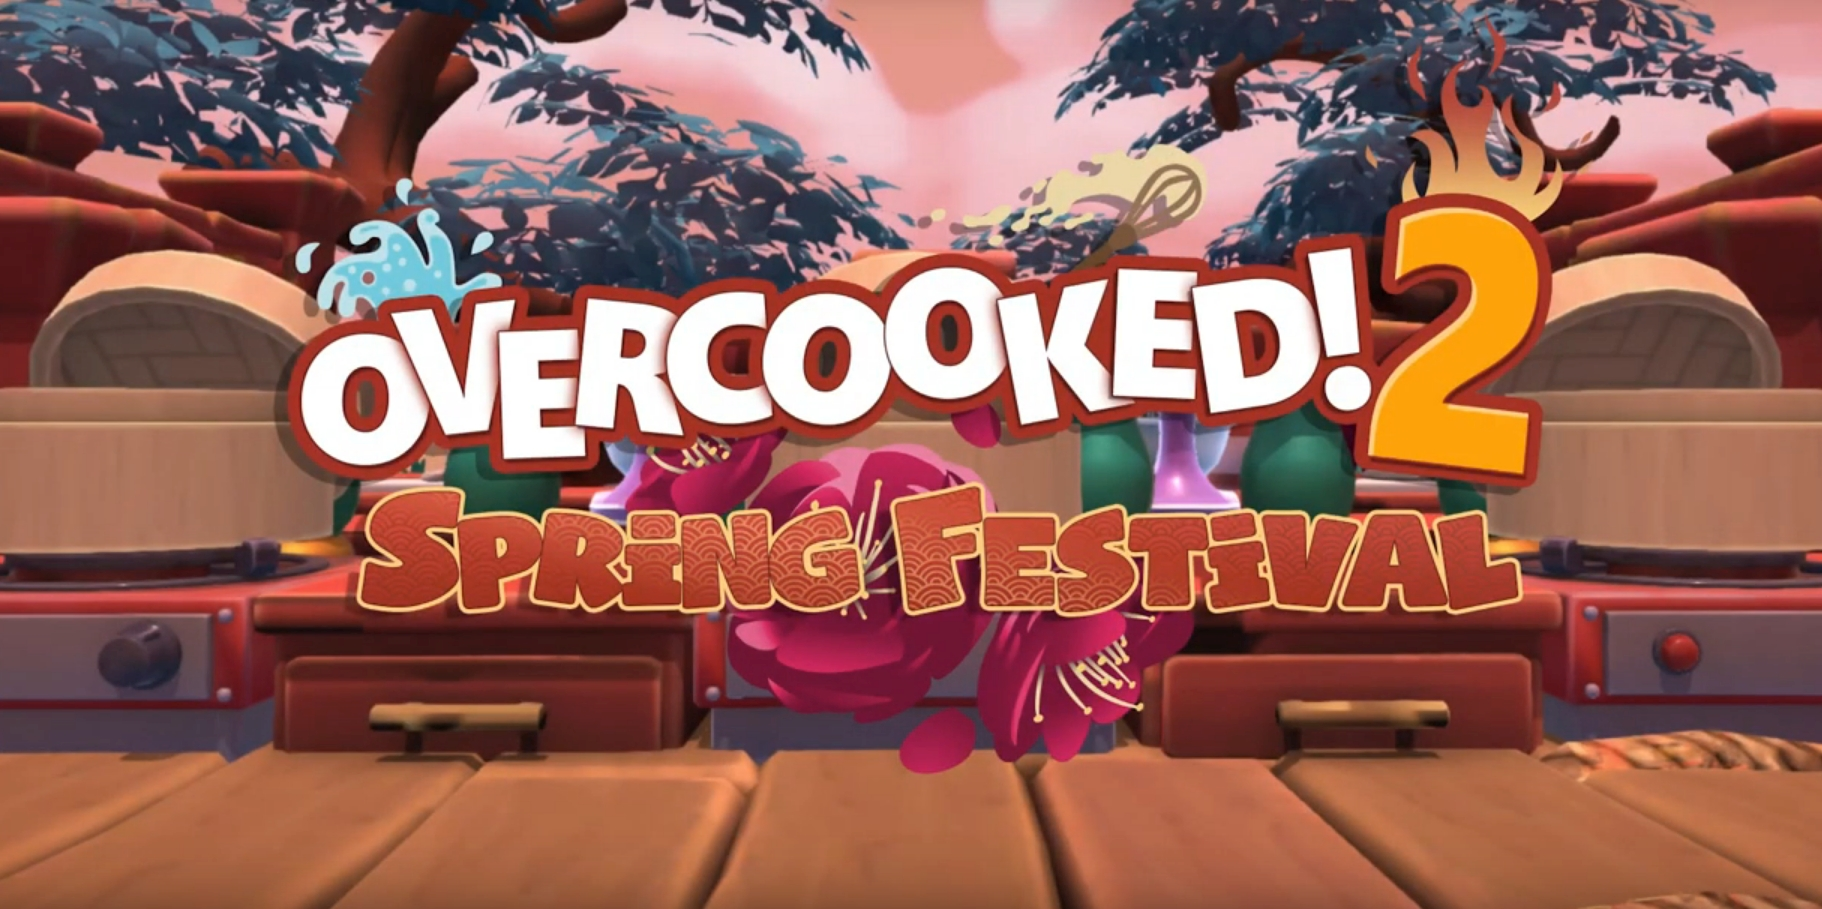 Overcooked 2 Celebrates Spring Early With Free Update Including New Chefs And Levels